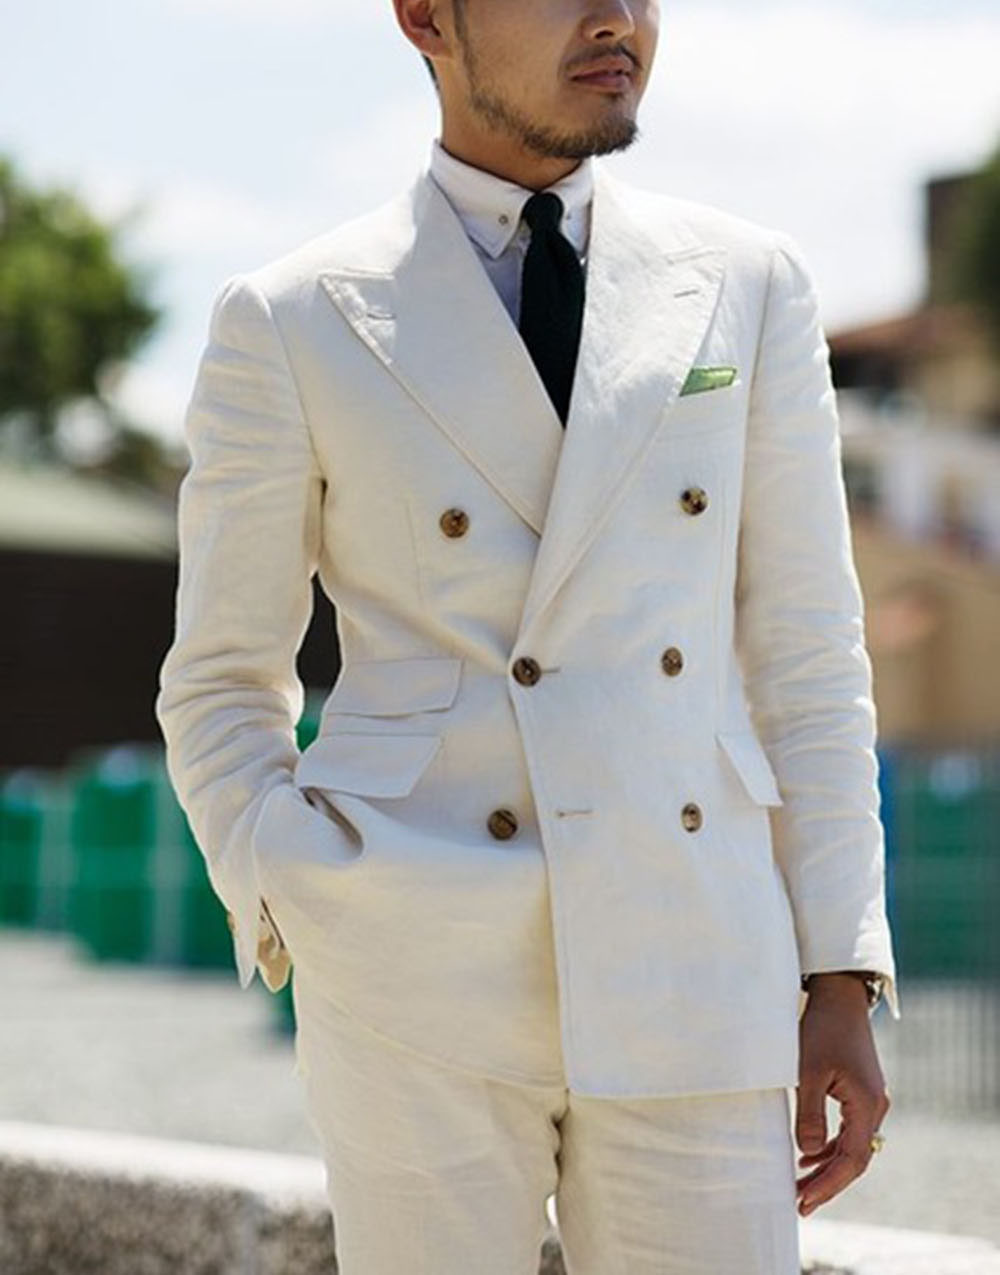 New-White-Man-s-Suit-Blazer-Slim-Fit-Formal-Double-breasted-Notch-Lapel-Groomsmen-Tuxedos-Jacket